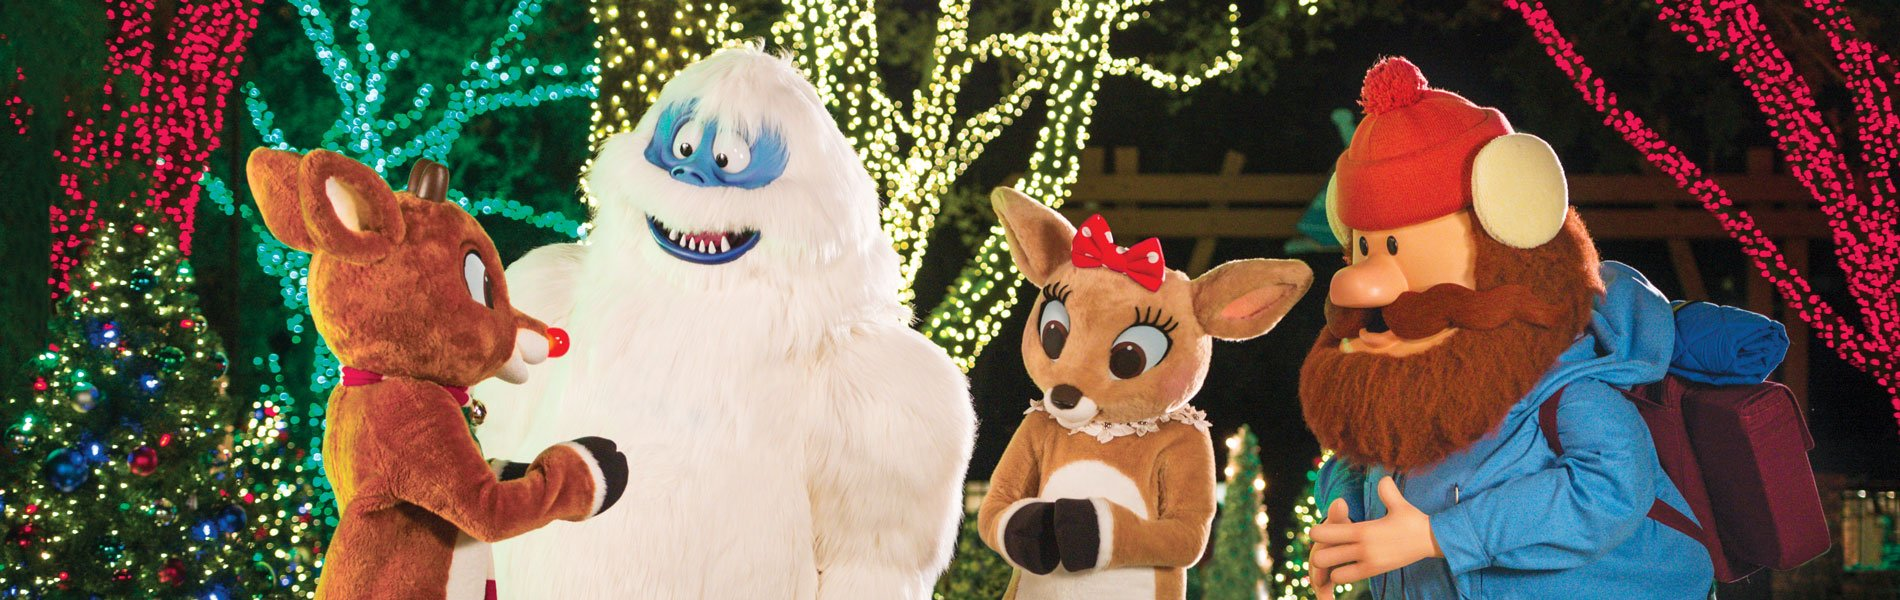 Photos with Rudolph and Friends